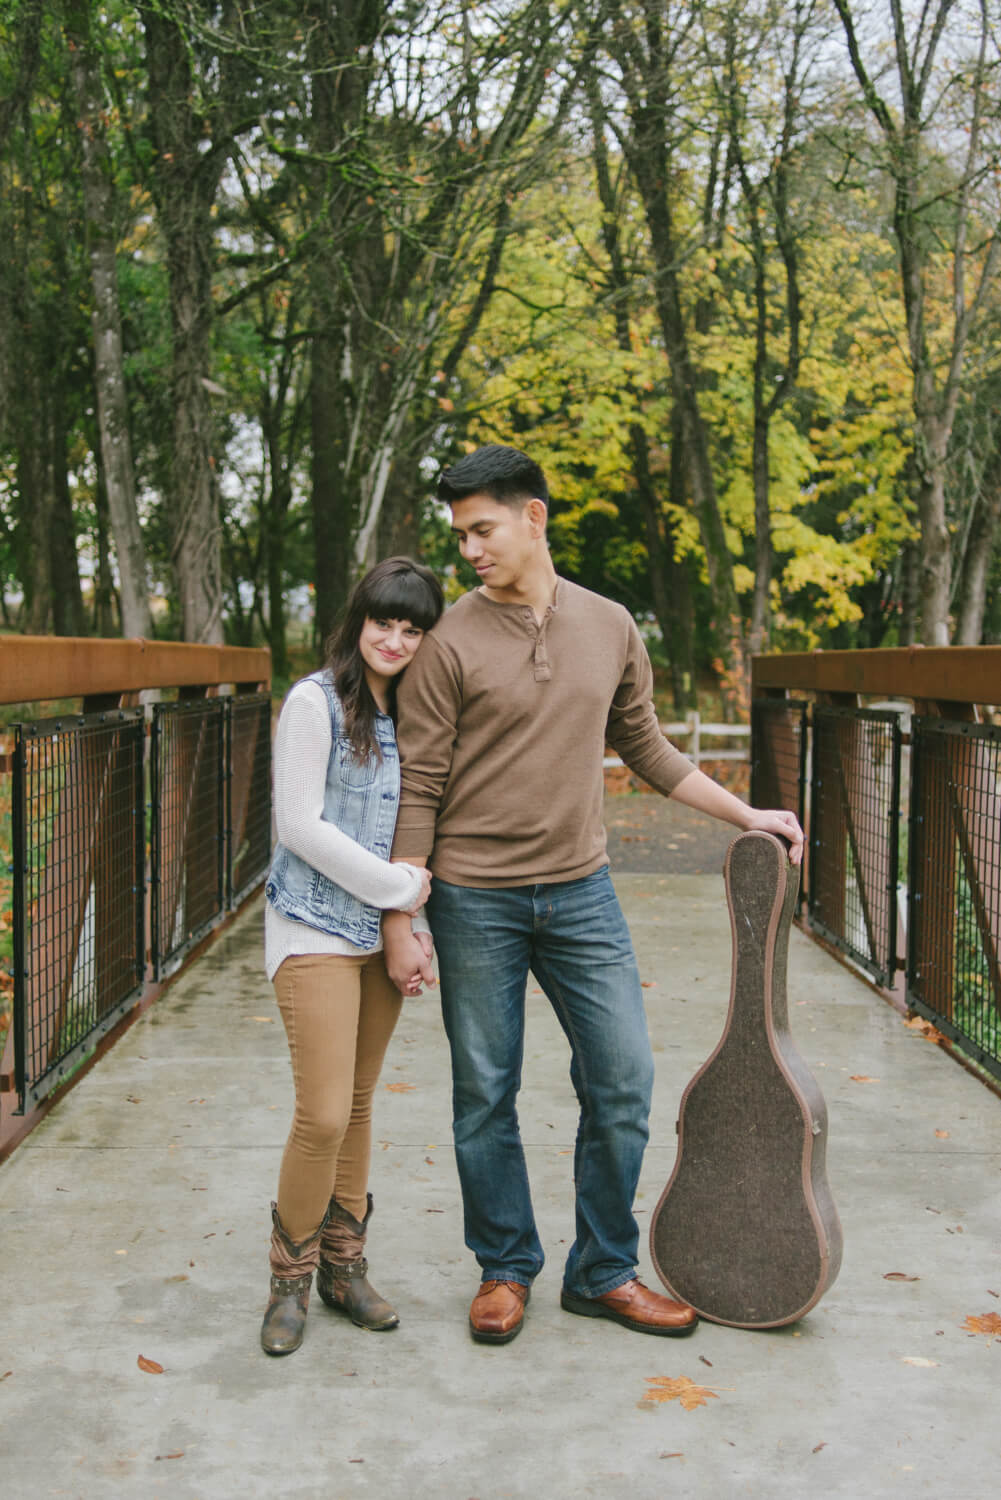 leach-botanical-garden-engagement-photography-portland-oregon-shelley-marie-photo-0789.jpg